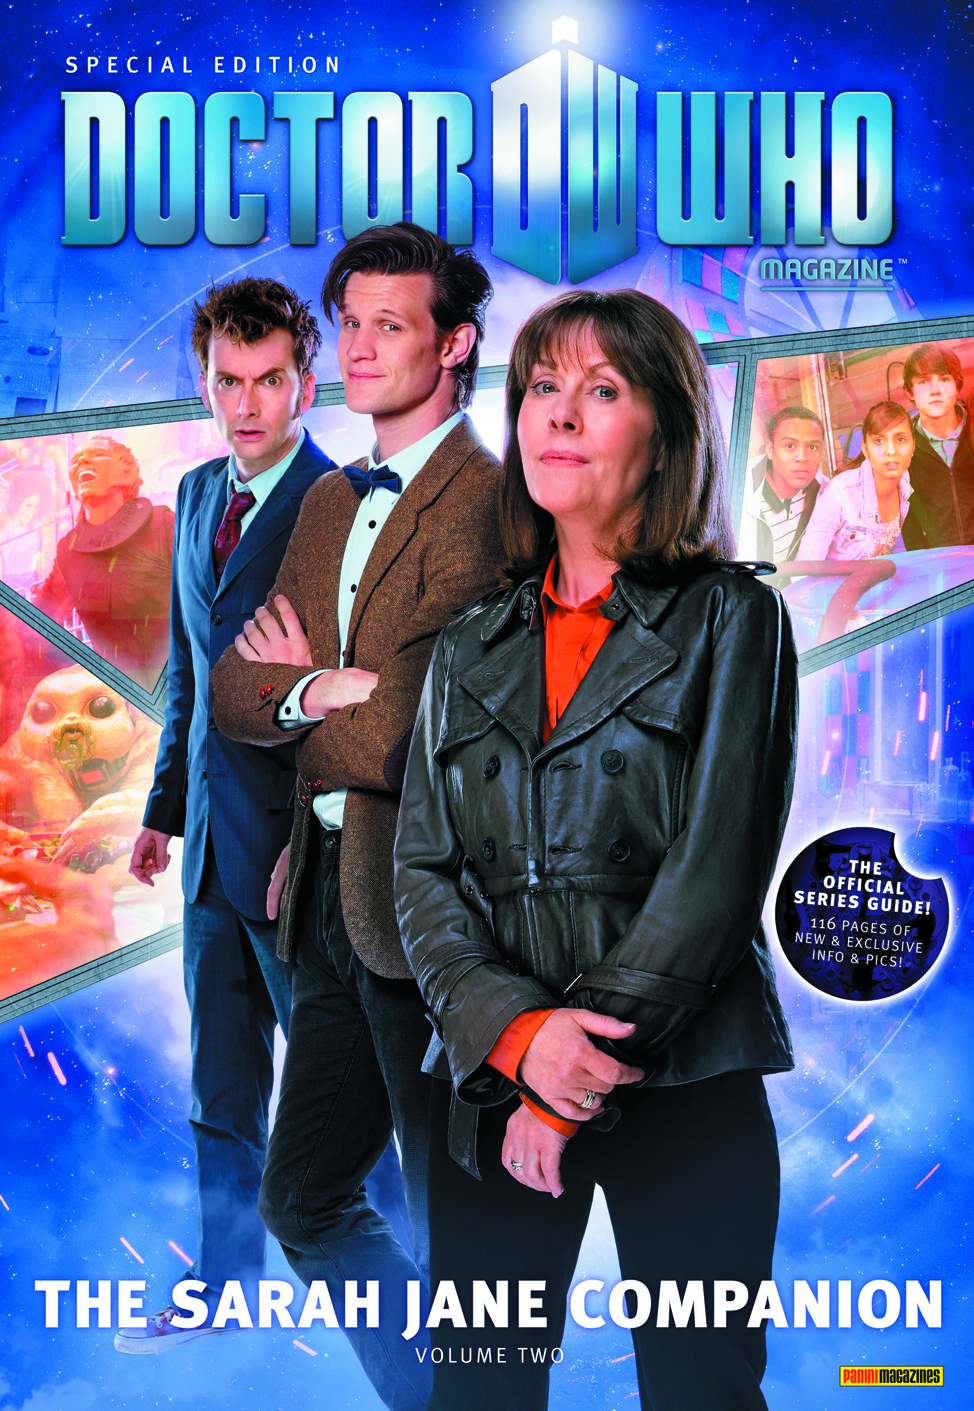 DOCTOR WHO SPECIAL #32